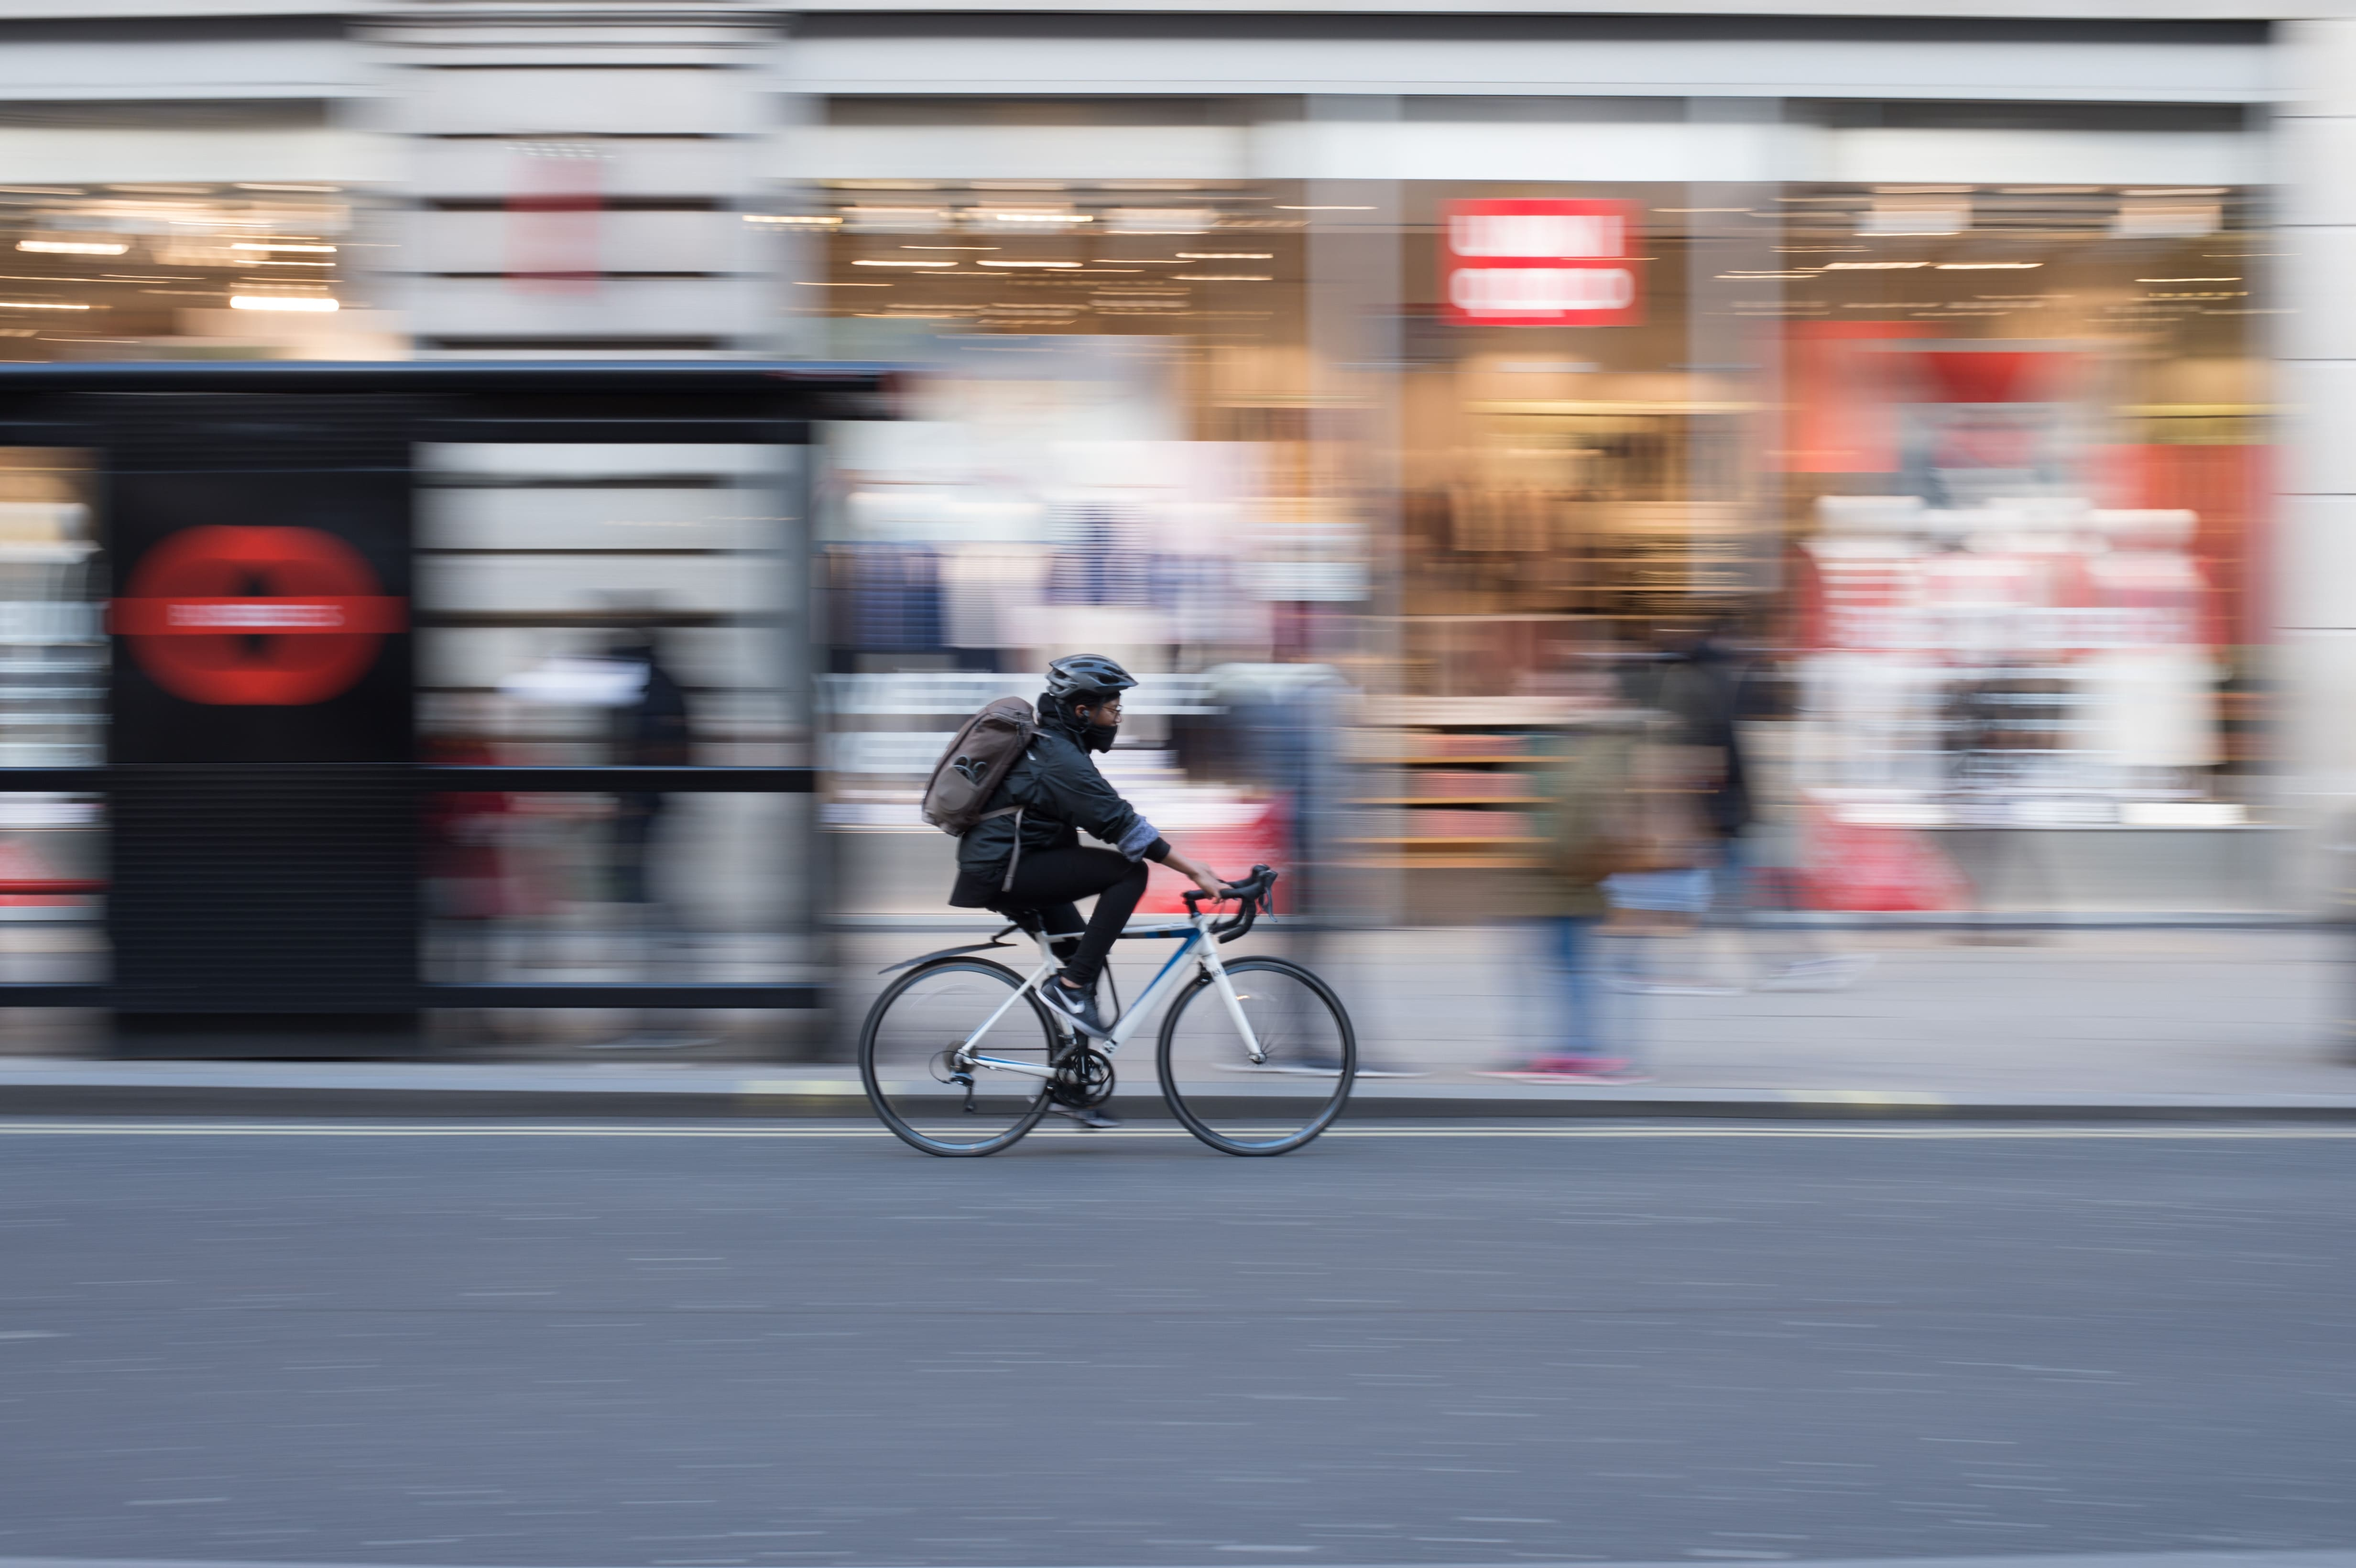 Bikes are a form of London transportation, but be sure you know all the rules